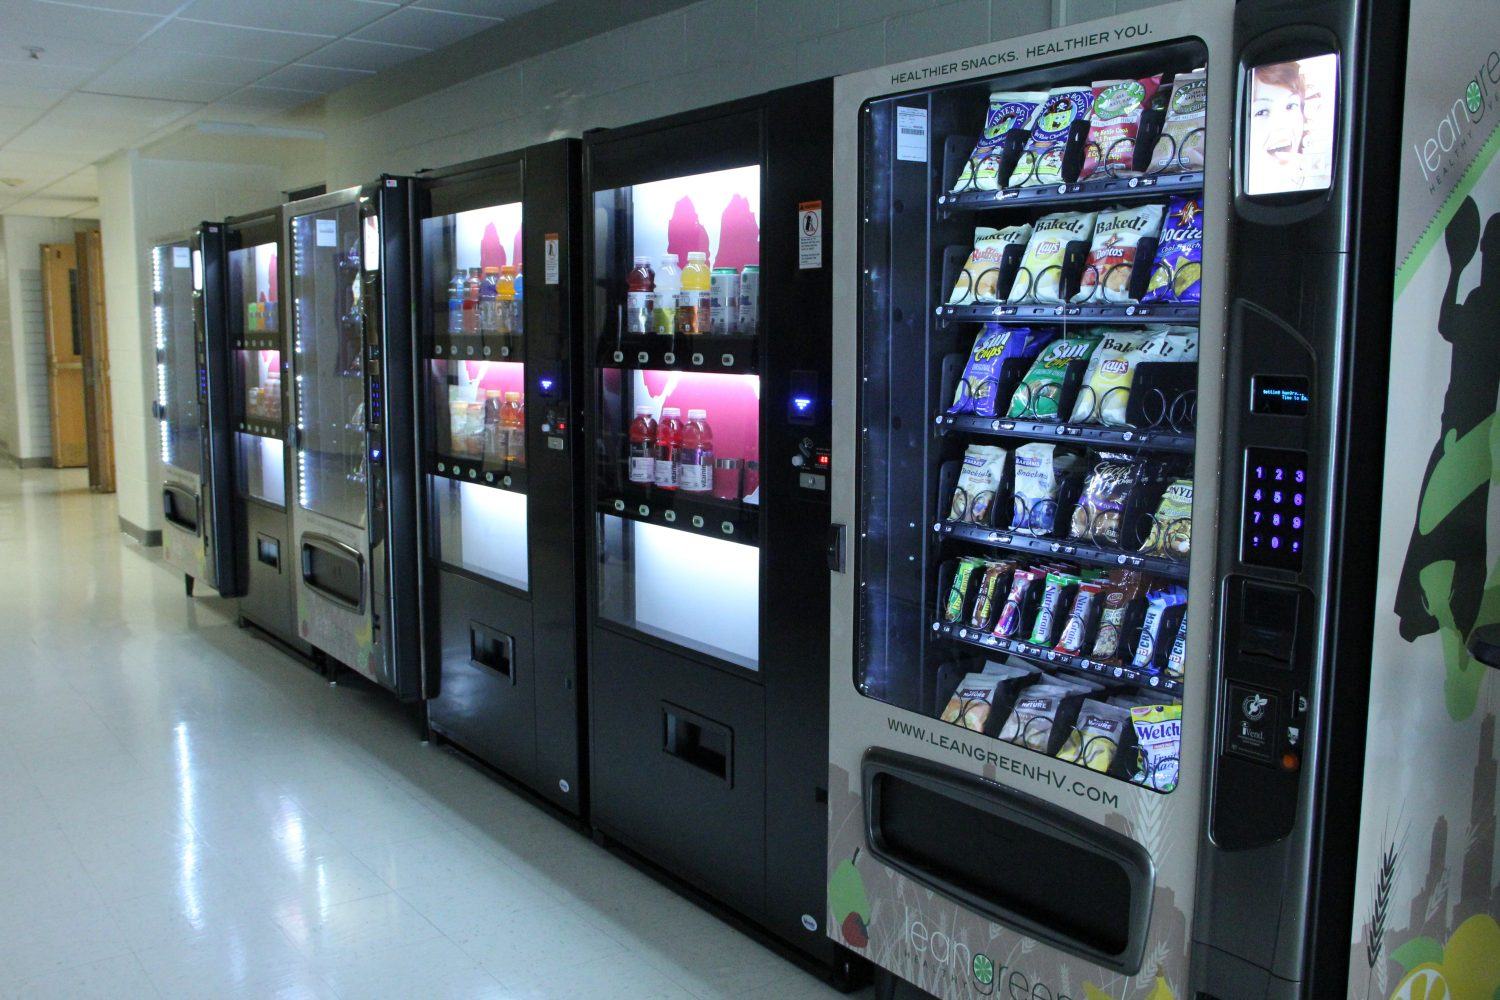 Say+Goodbye+to+Poptarts%3A+Vending+Machines+Now+Contain+Healthier+Snacks